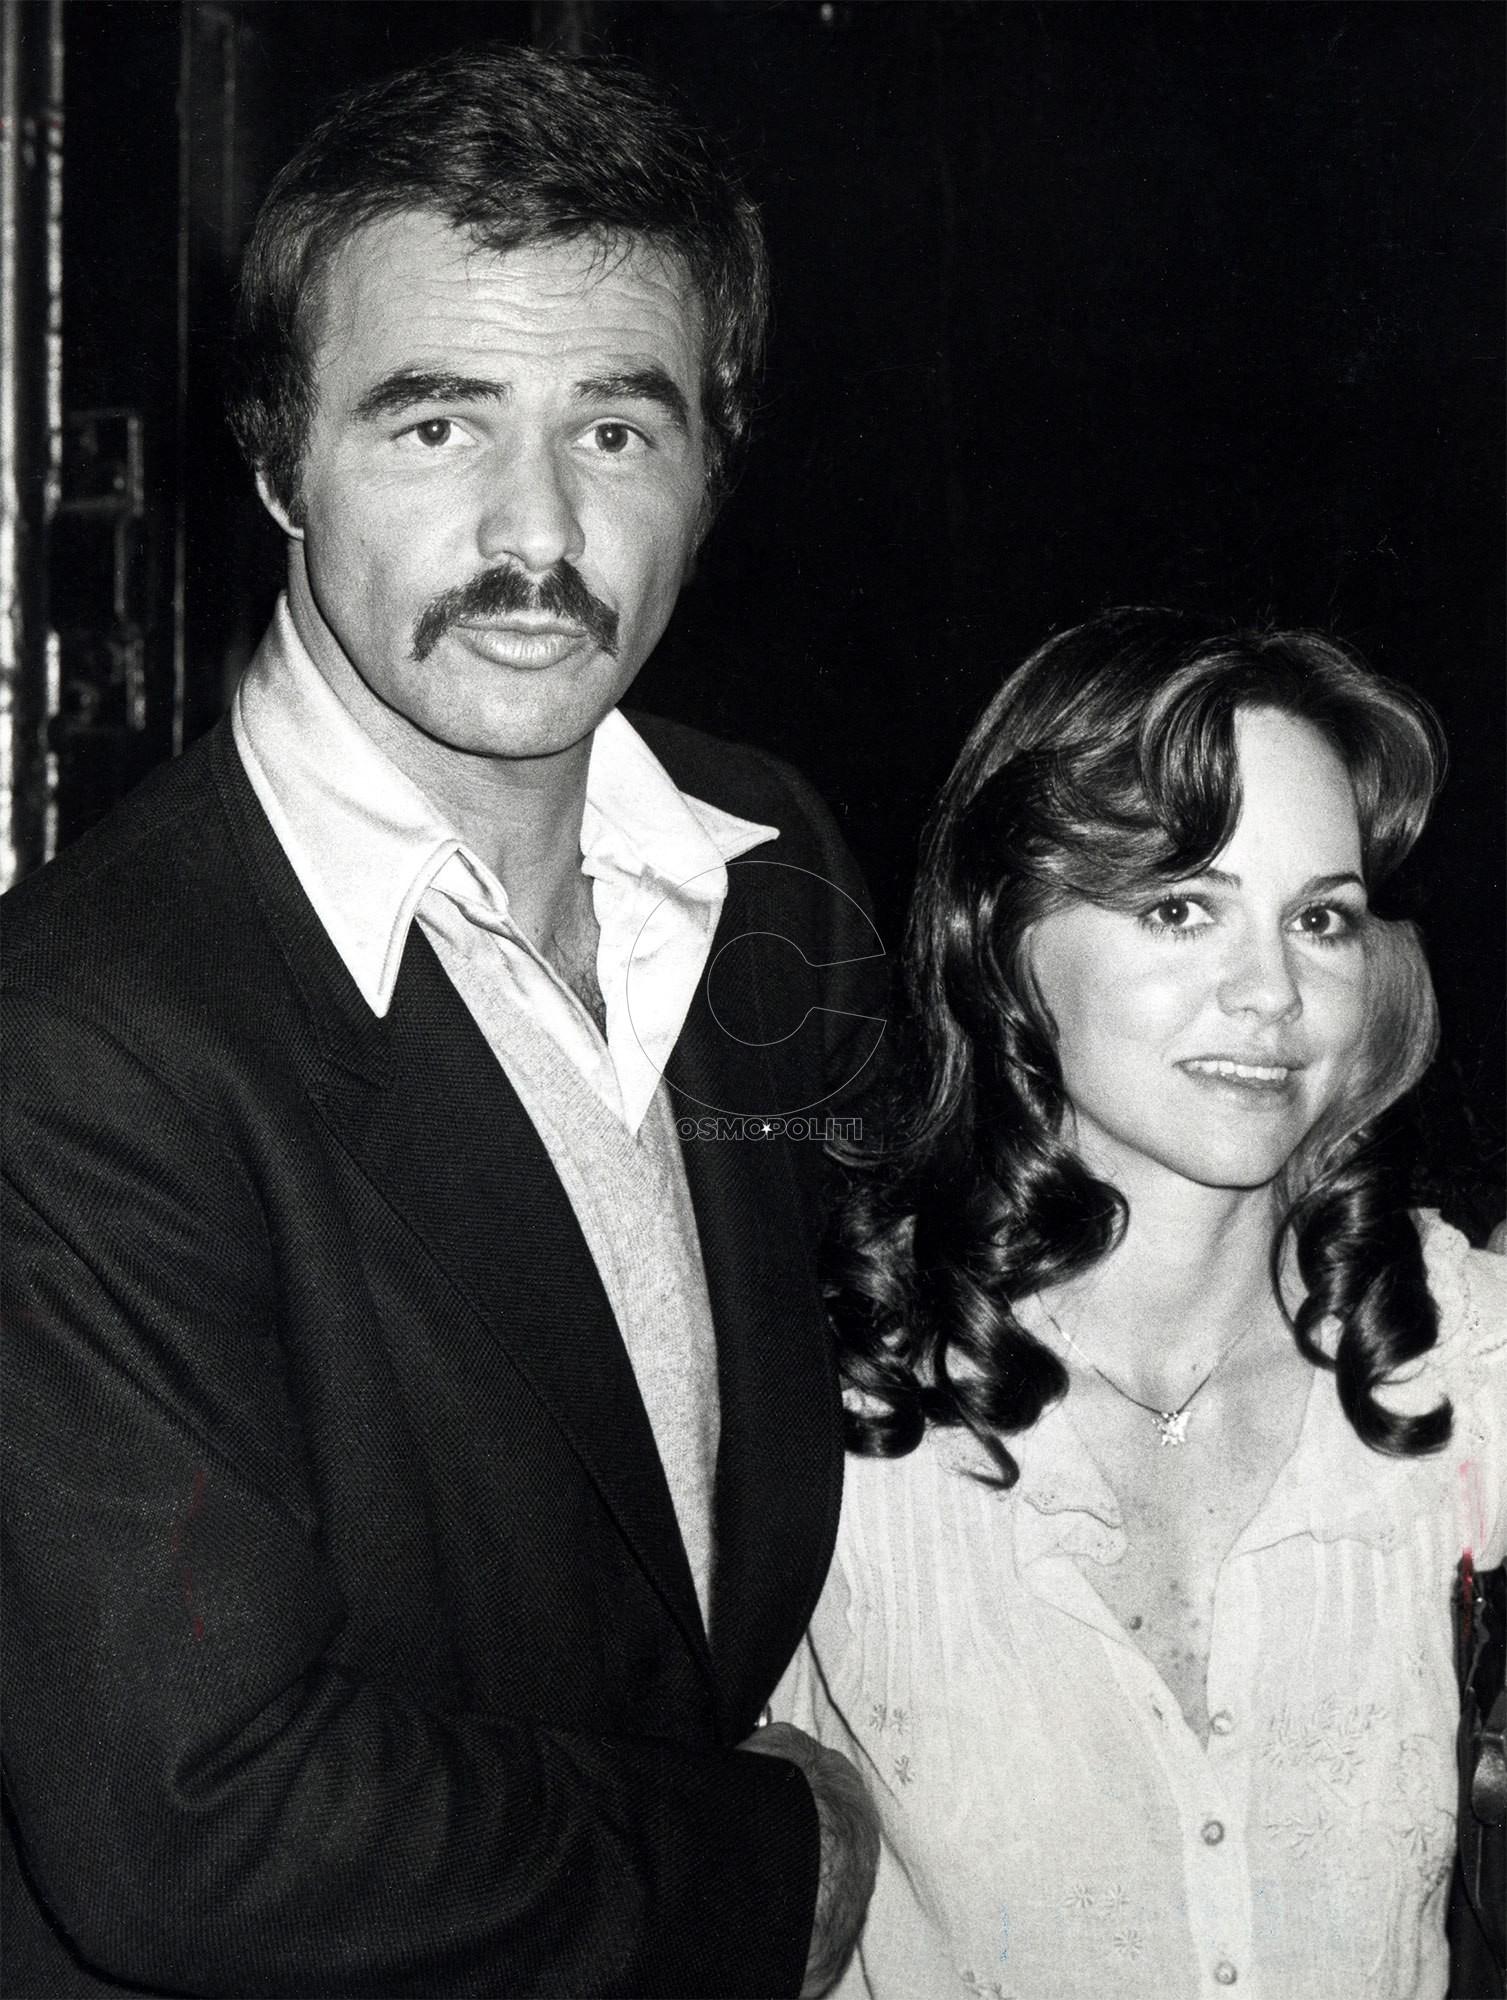 Burt Reynolds and Sally Field during Bert Reynolds and Sally Field Sighting at Steak Pit Restaurant - March 15, 1978 at Steak Pit Restaurant in Los Angeles, California, United States. (Photo by Ron Galella/WireImage)